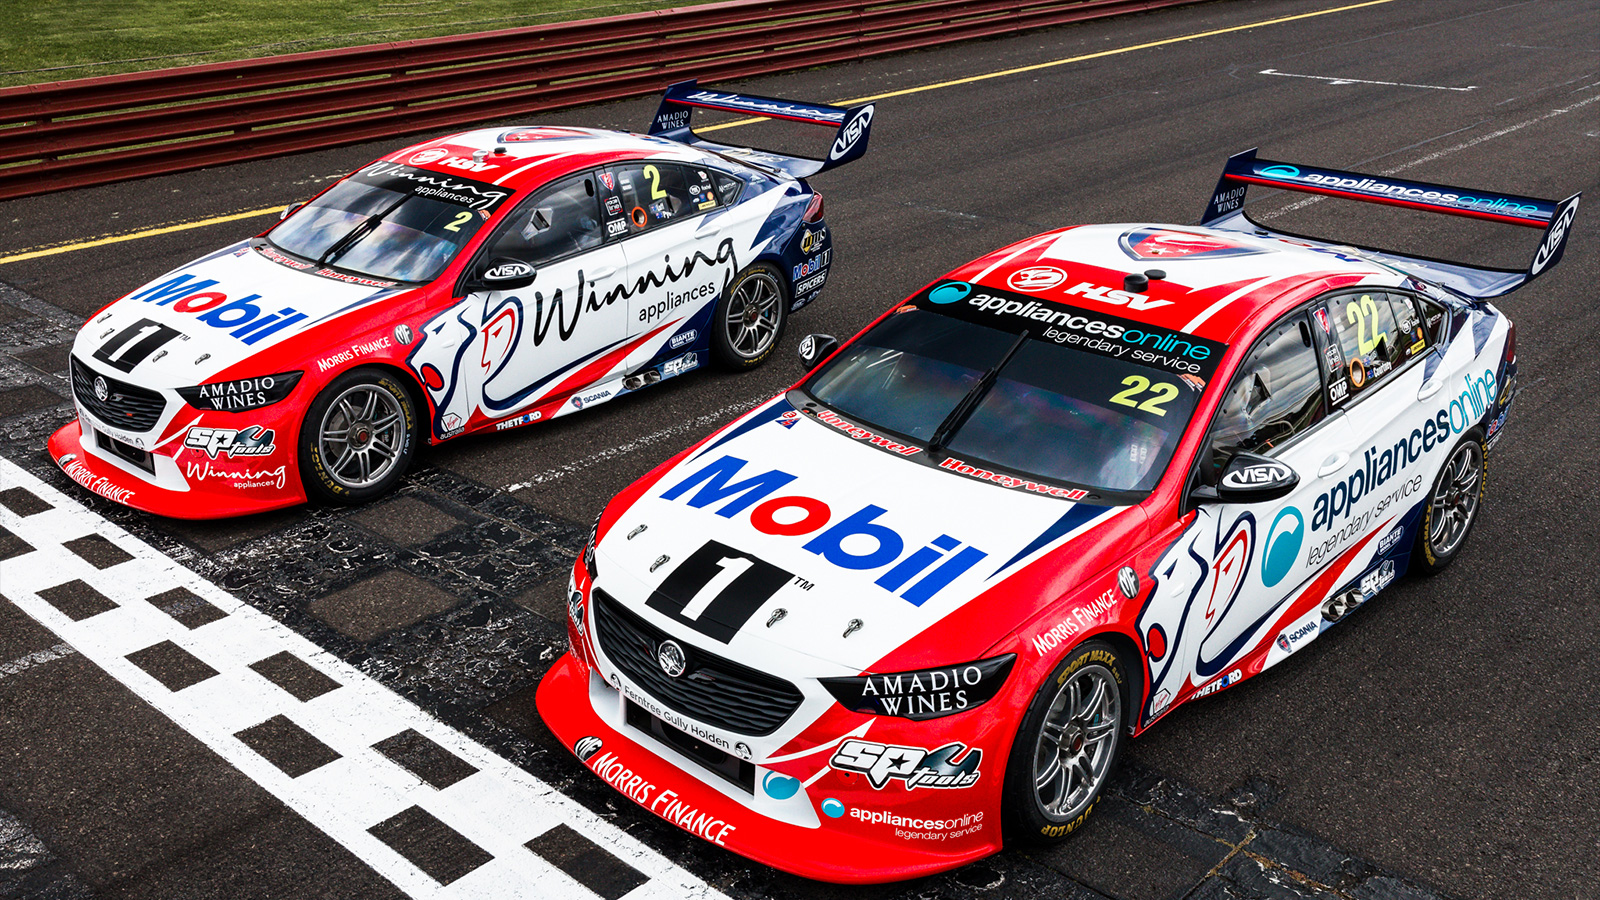 1999 Mobil 1™ Holden Racing Team livery replicated for Retro Round